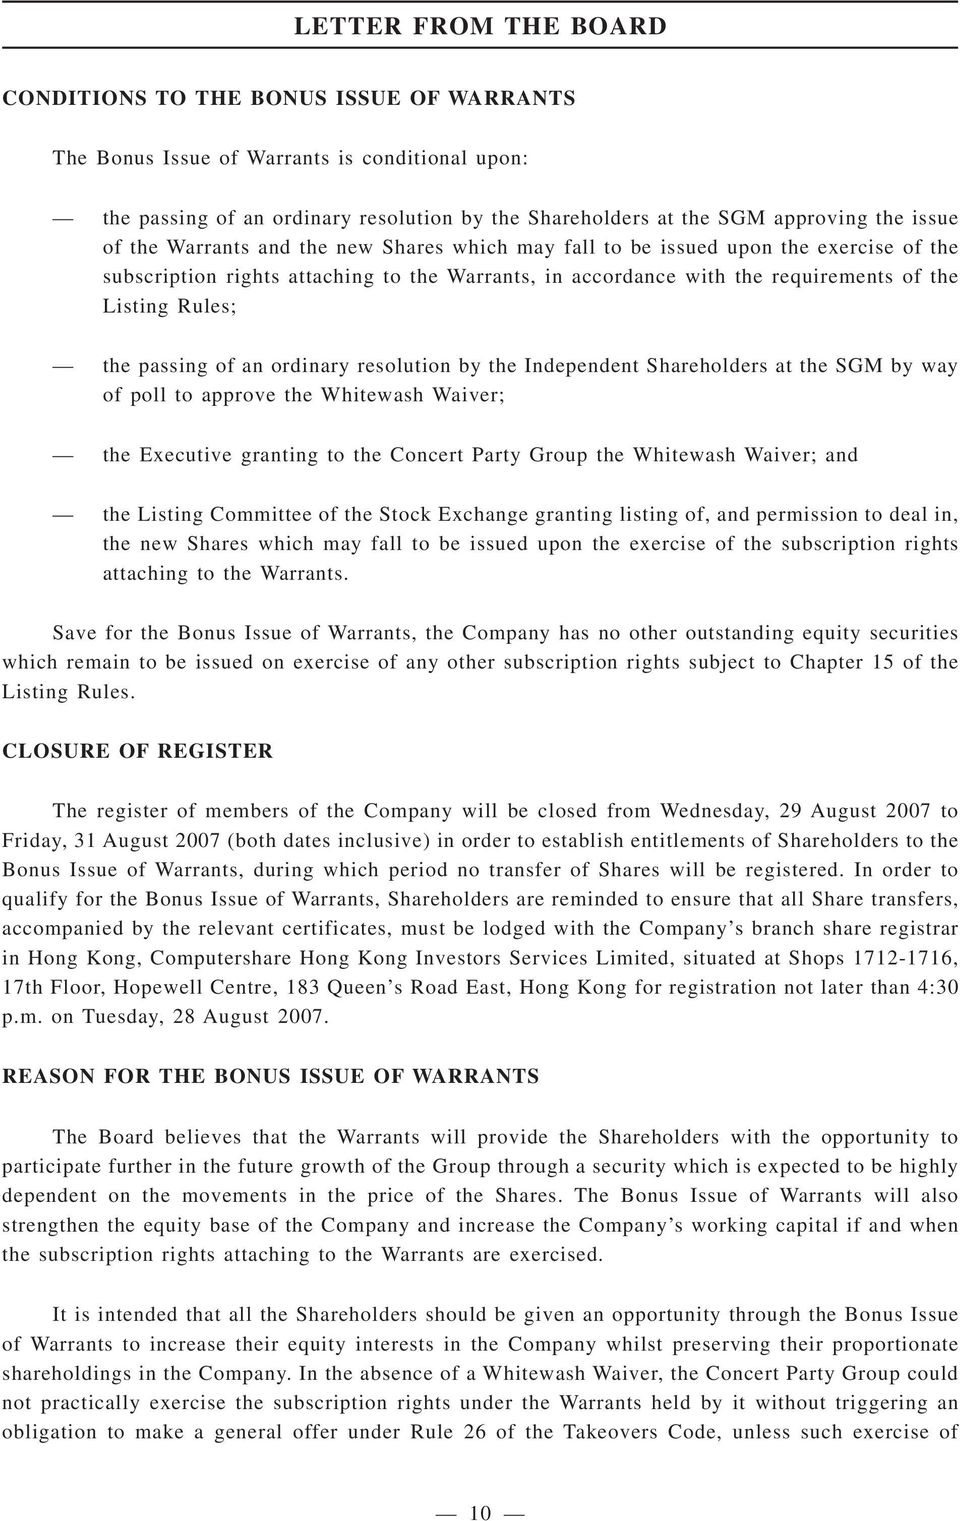 the passing of an ordinary resolution by the Independent Shareholders at the SGM by way of poll to approve the Whitewash Waiver; the Executive granting to the Concert Party Group the Whitewash